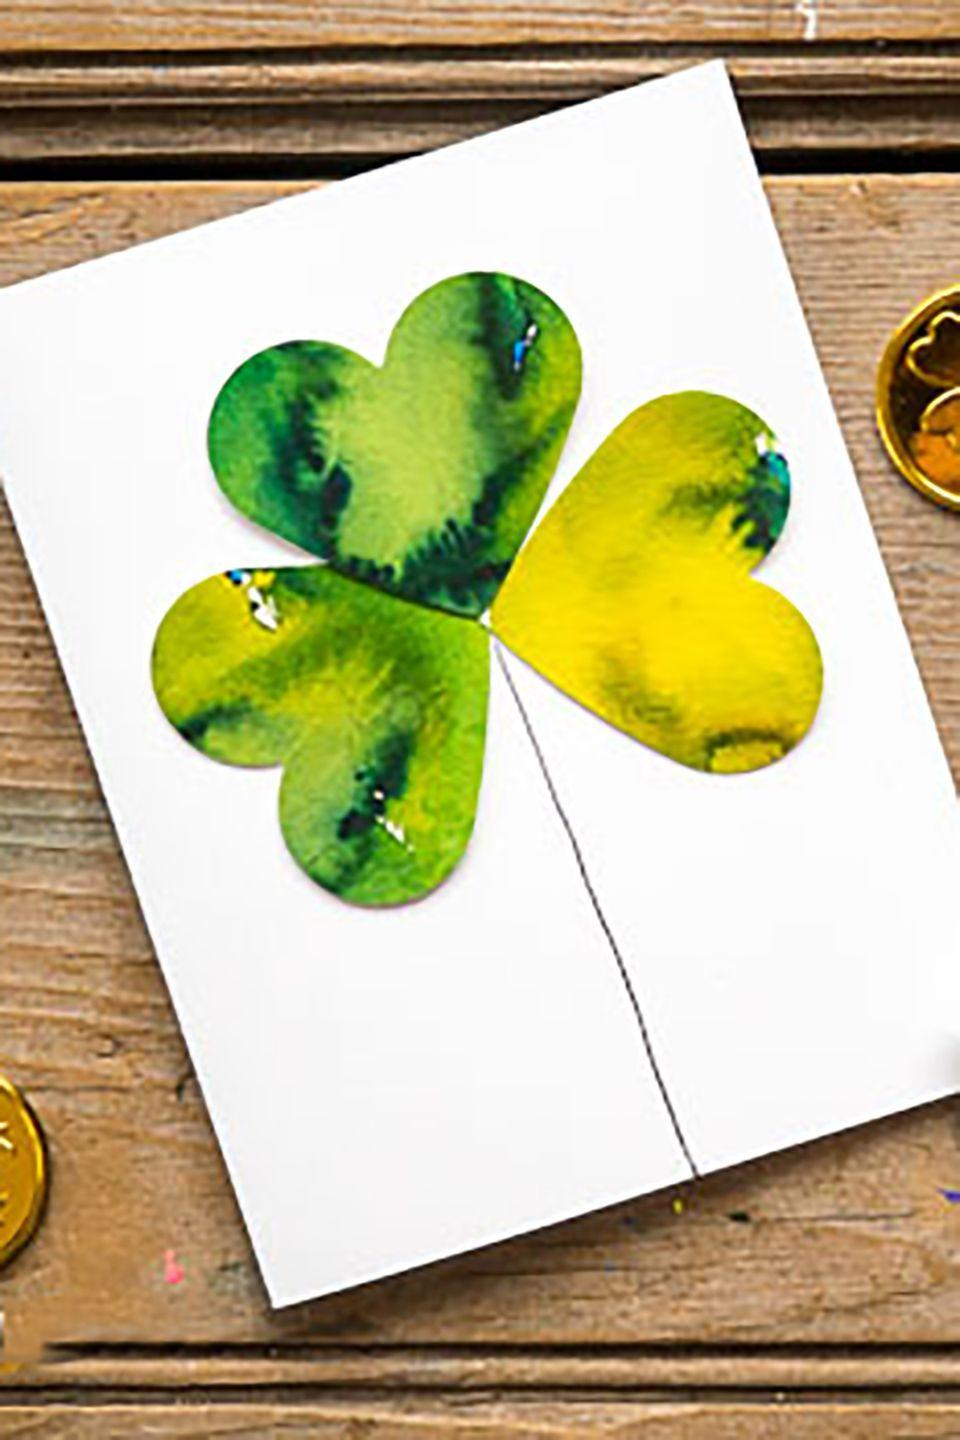 """<p>Have the kids help out with this gorgeous card that can be given to friends or family.</p><p><strong>Get the tutorial at <a href=""""http://www.hellowonderful.co/post/KID-MADE-WATERCOLOR-SHAMROCK-CLOVER-CARDS#_a5y_p=5057133"""" rel=""""nofollow noopener"""" target=""""_blank"""" data-ylk=""""slk:Hello Wonderful"""" class=""""link rapid-noclick-resp"""">Hello Wonderful</a>. </strong></p>"""